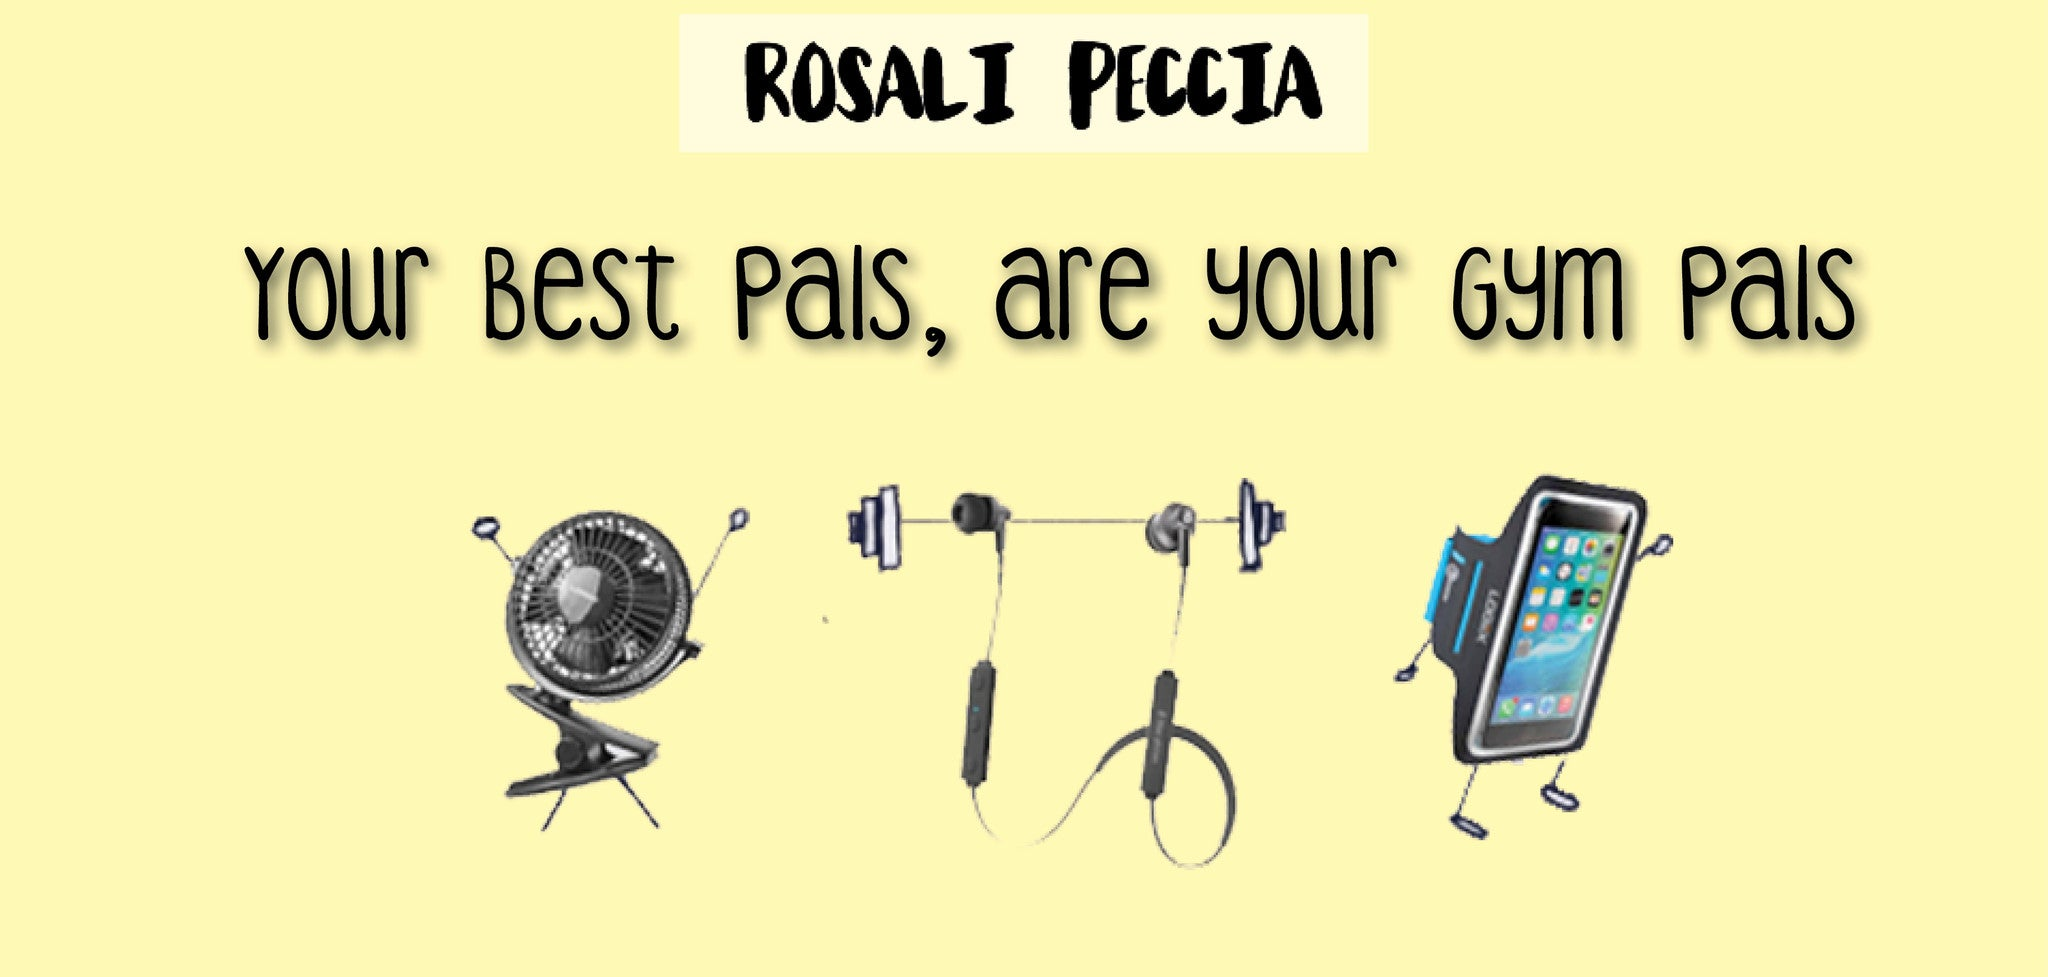 Rosali Peccia - Your Best Pals, Are Your Gym Pals